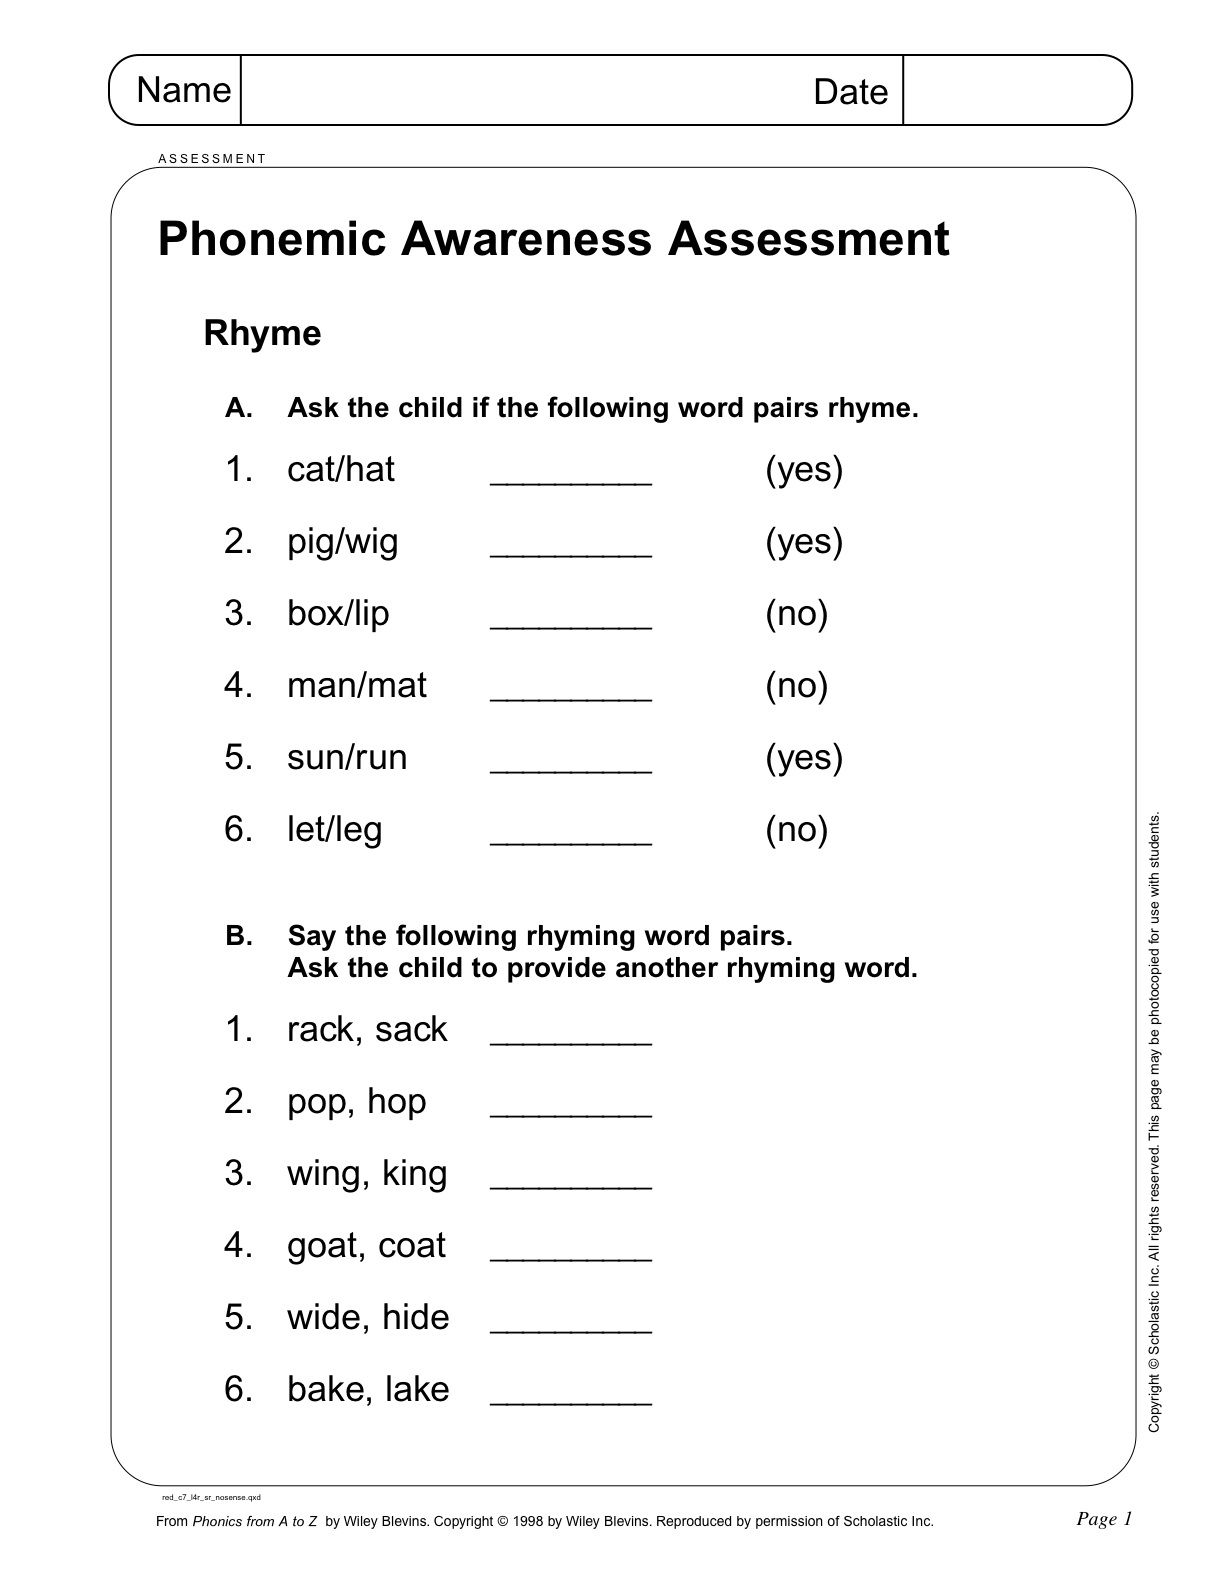 Phonemic Awareness Assessment Page 1 From Scholastic